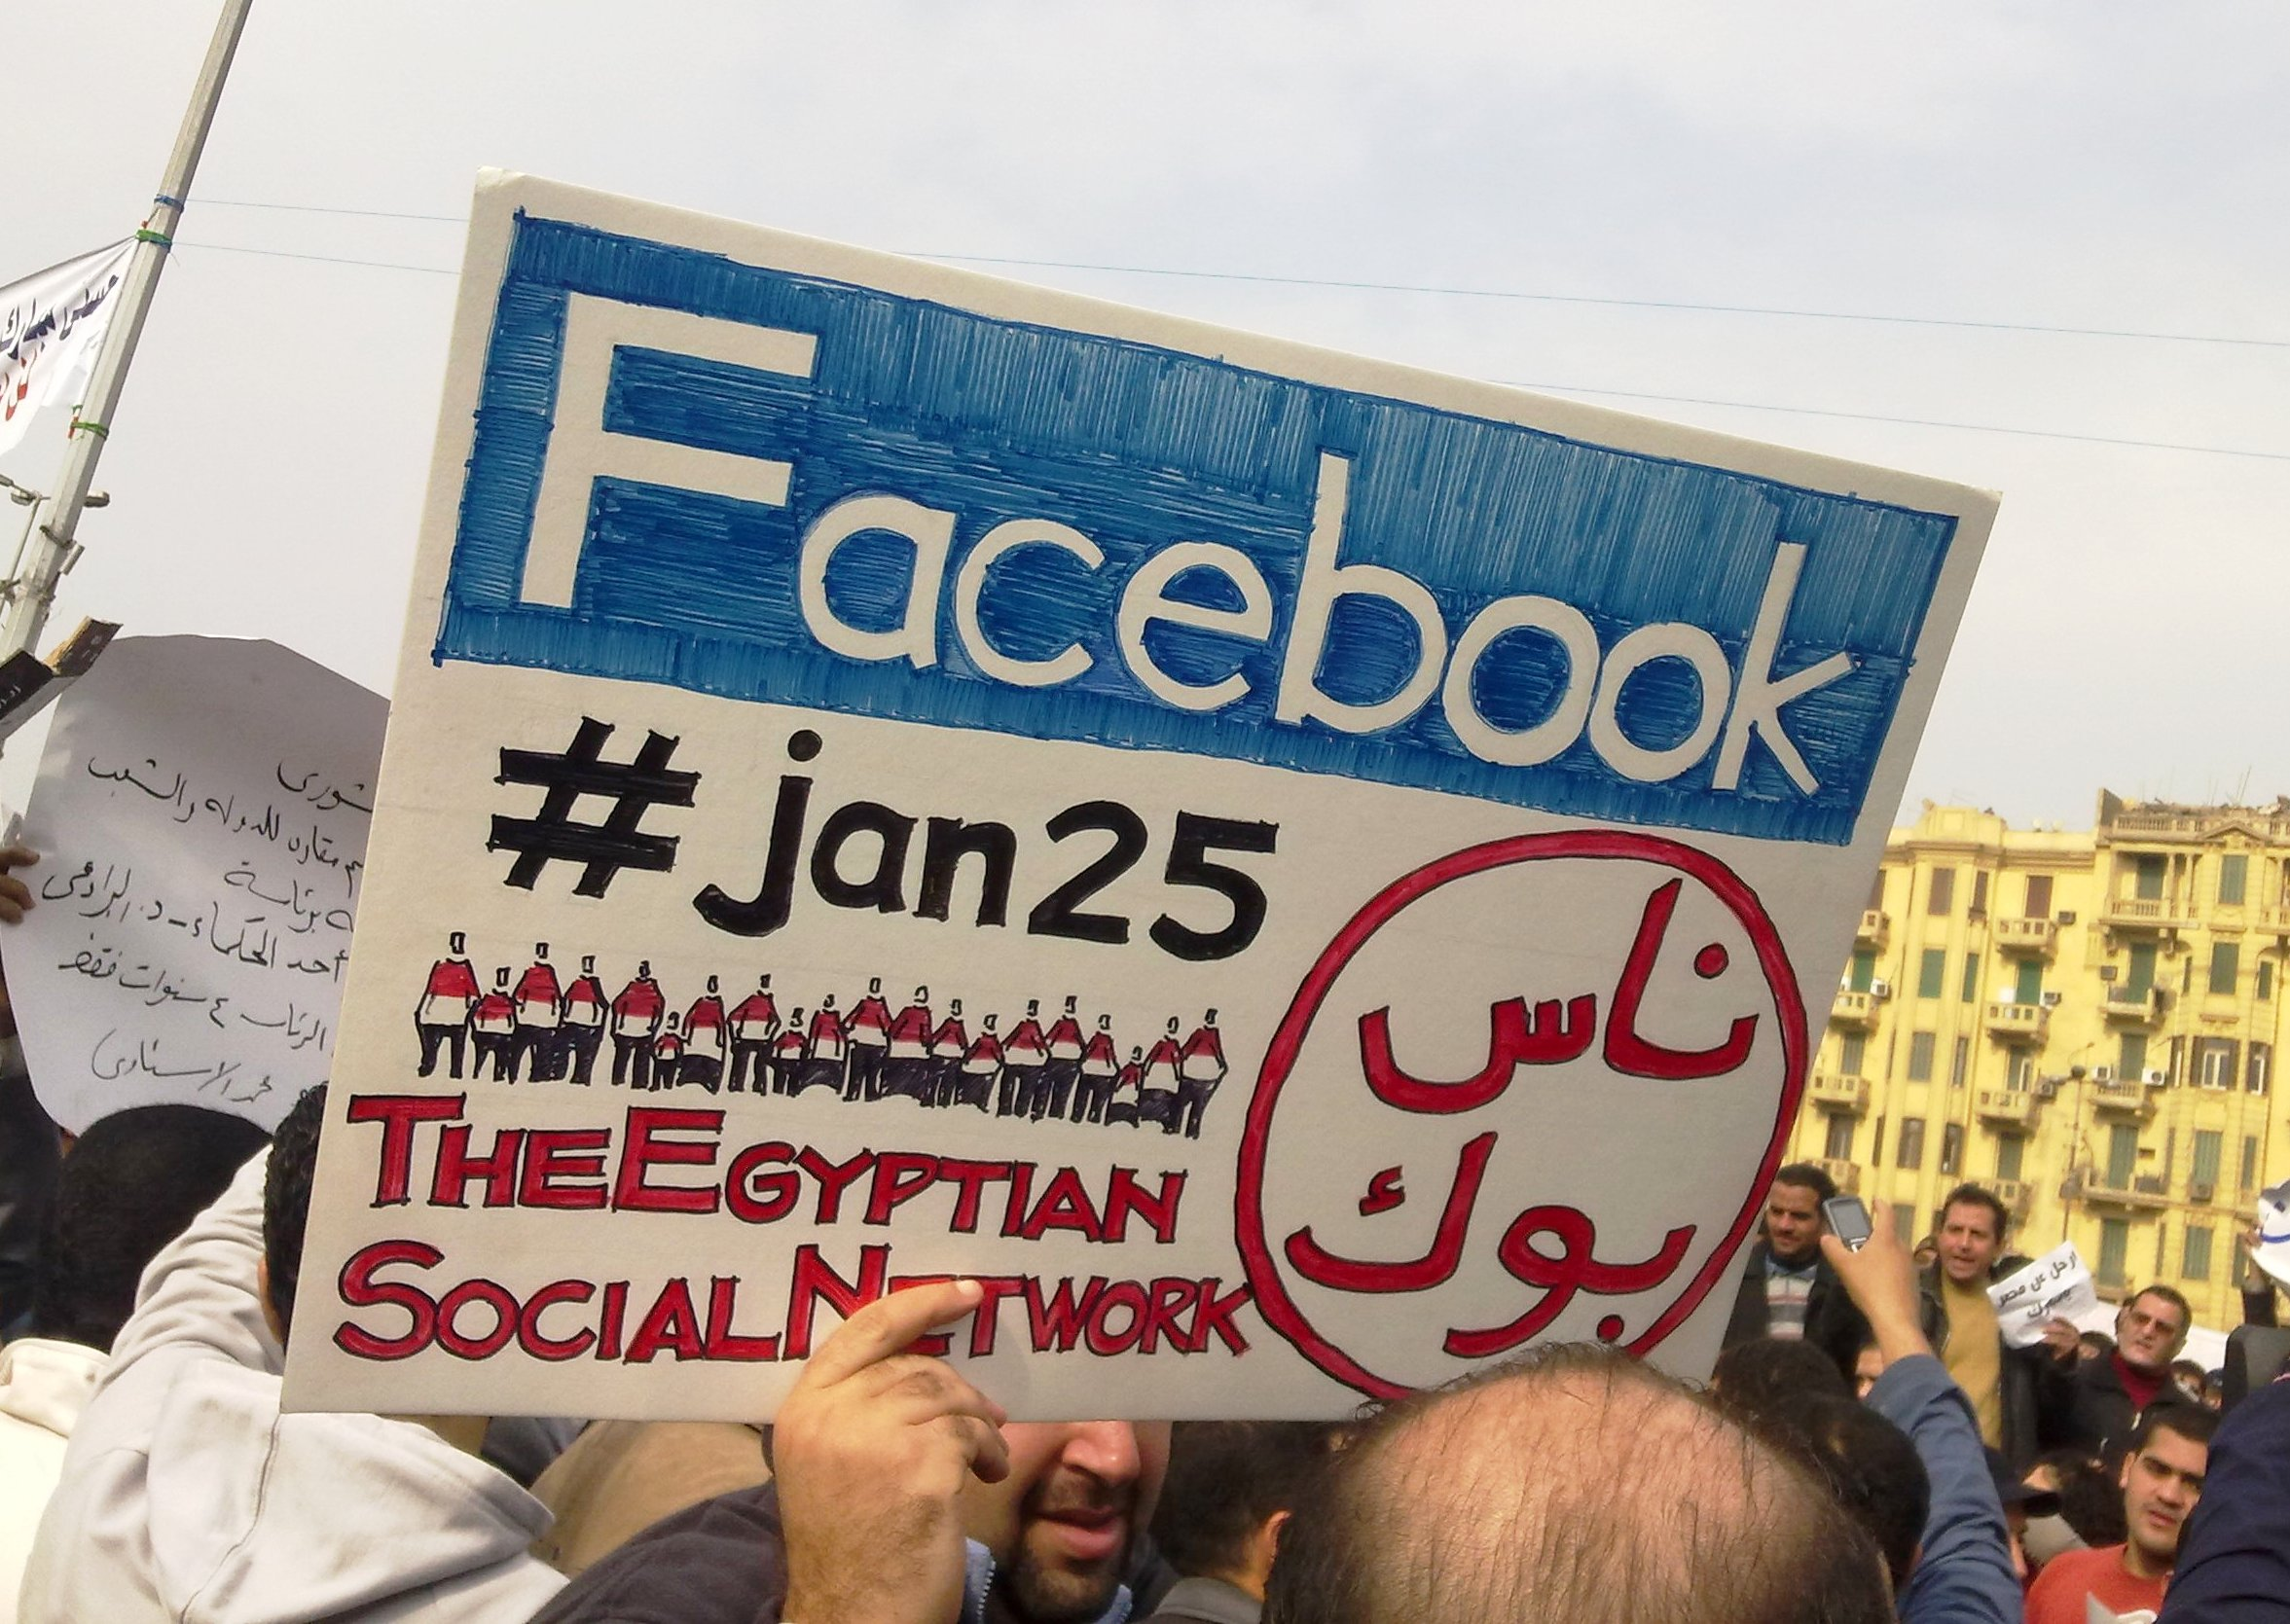 "A man during the 2011 Egyptian protests carrying a card saying ""Facebook,#jan25, The Egyptian Social Network""."